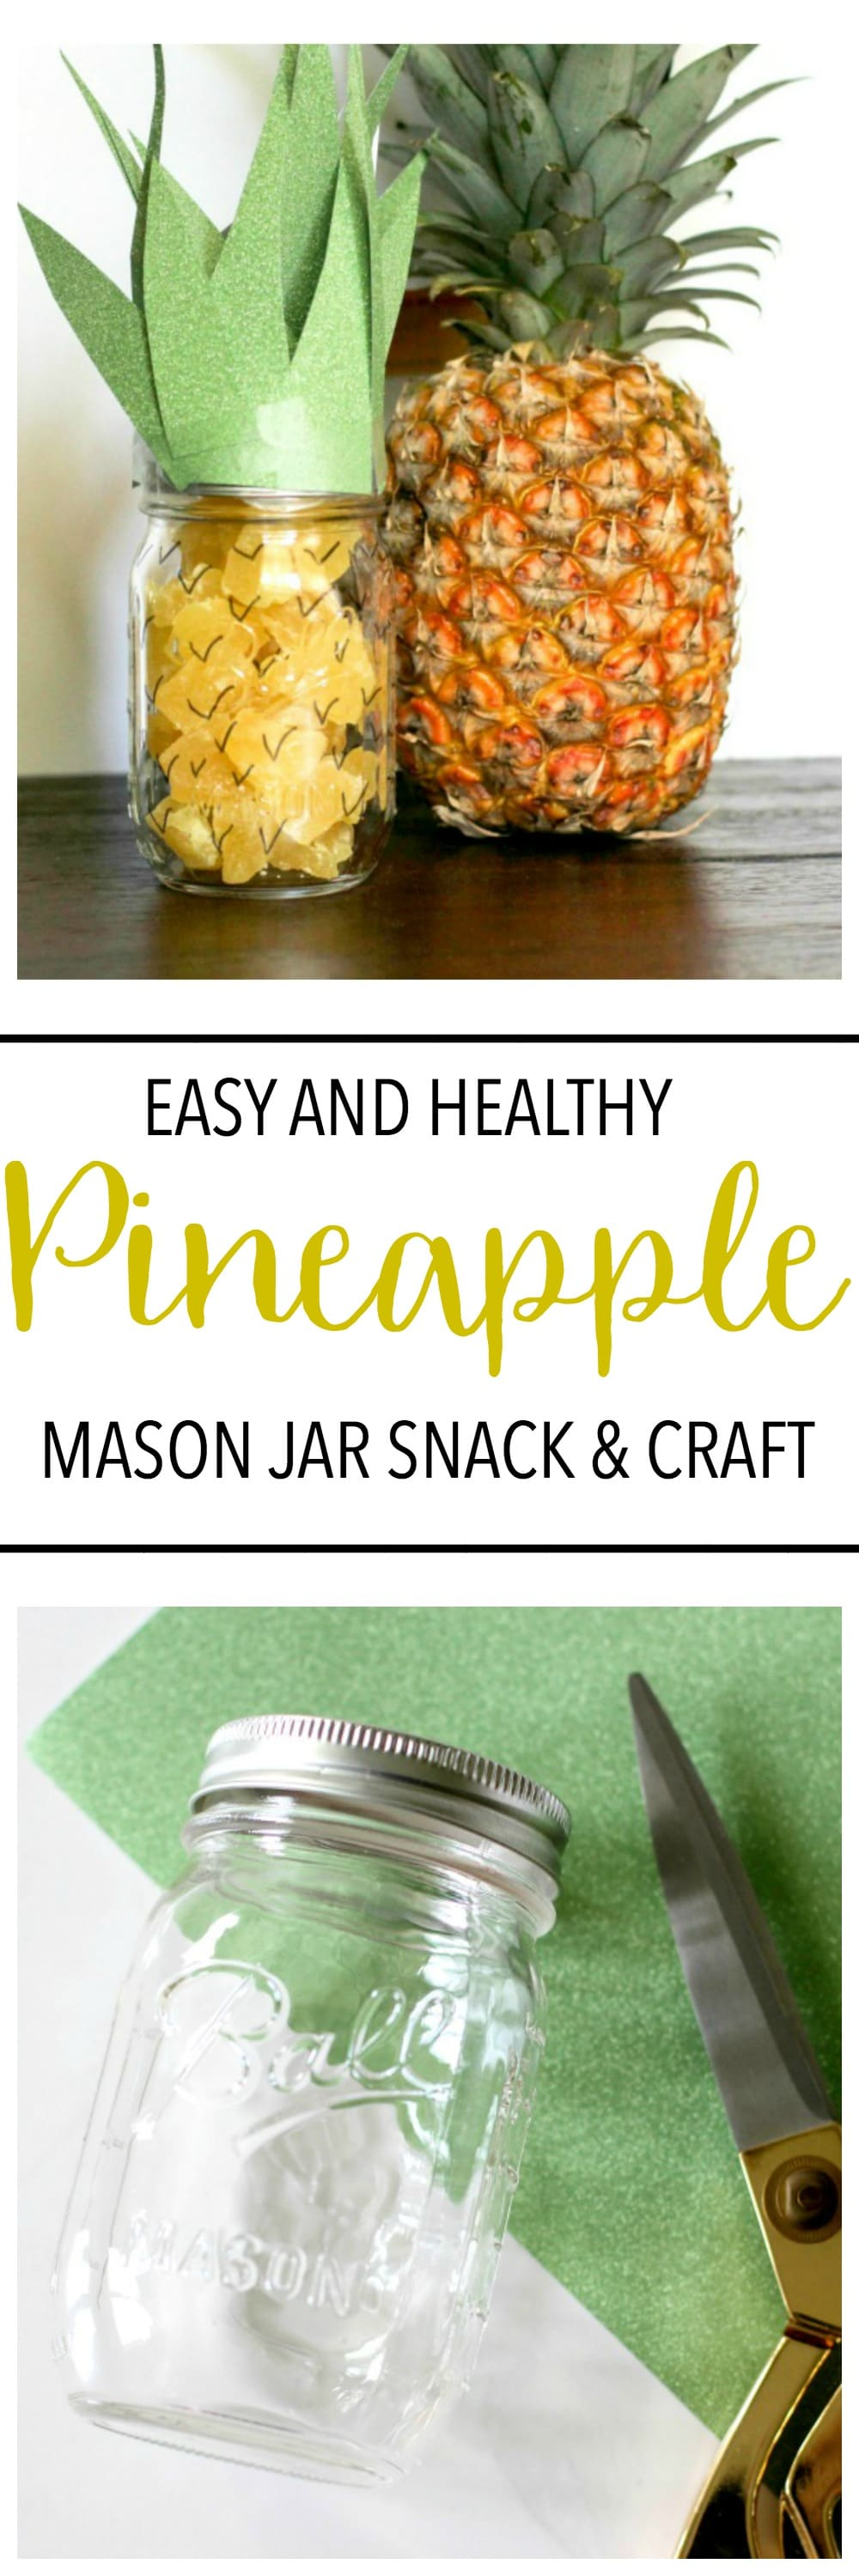 Dried Pineapple Mason Jar Craft